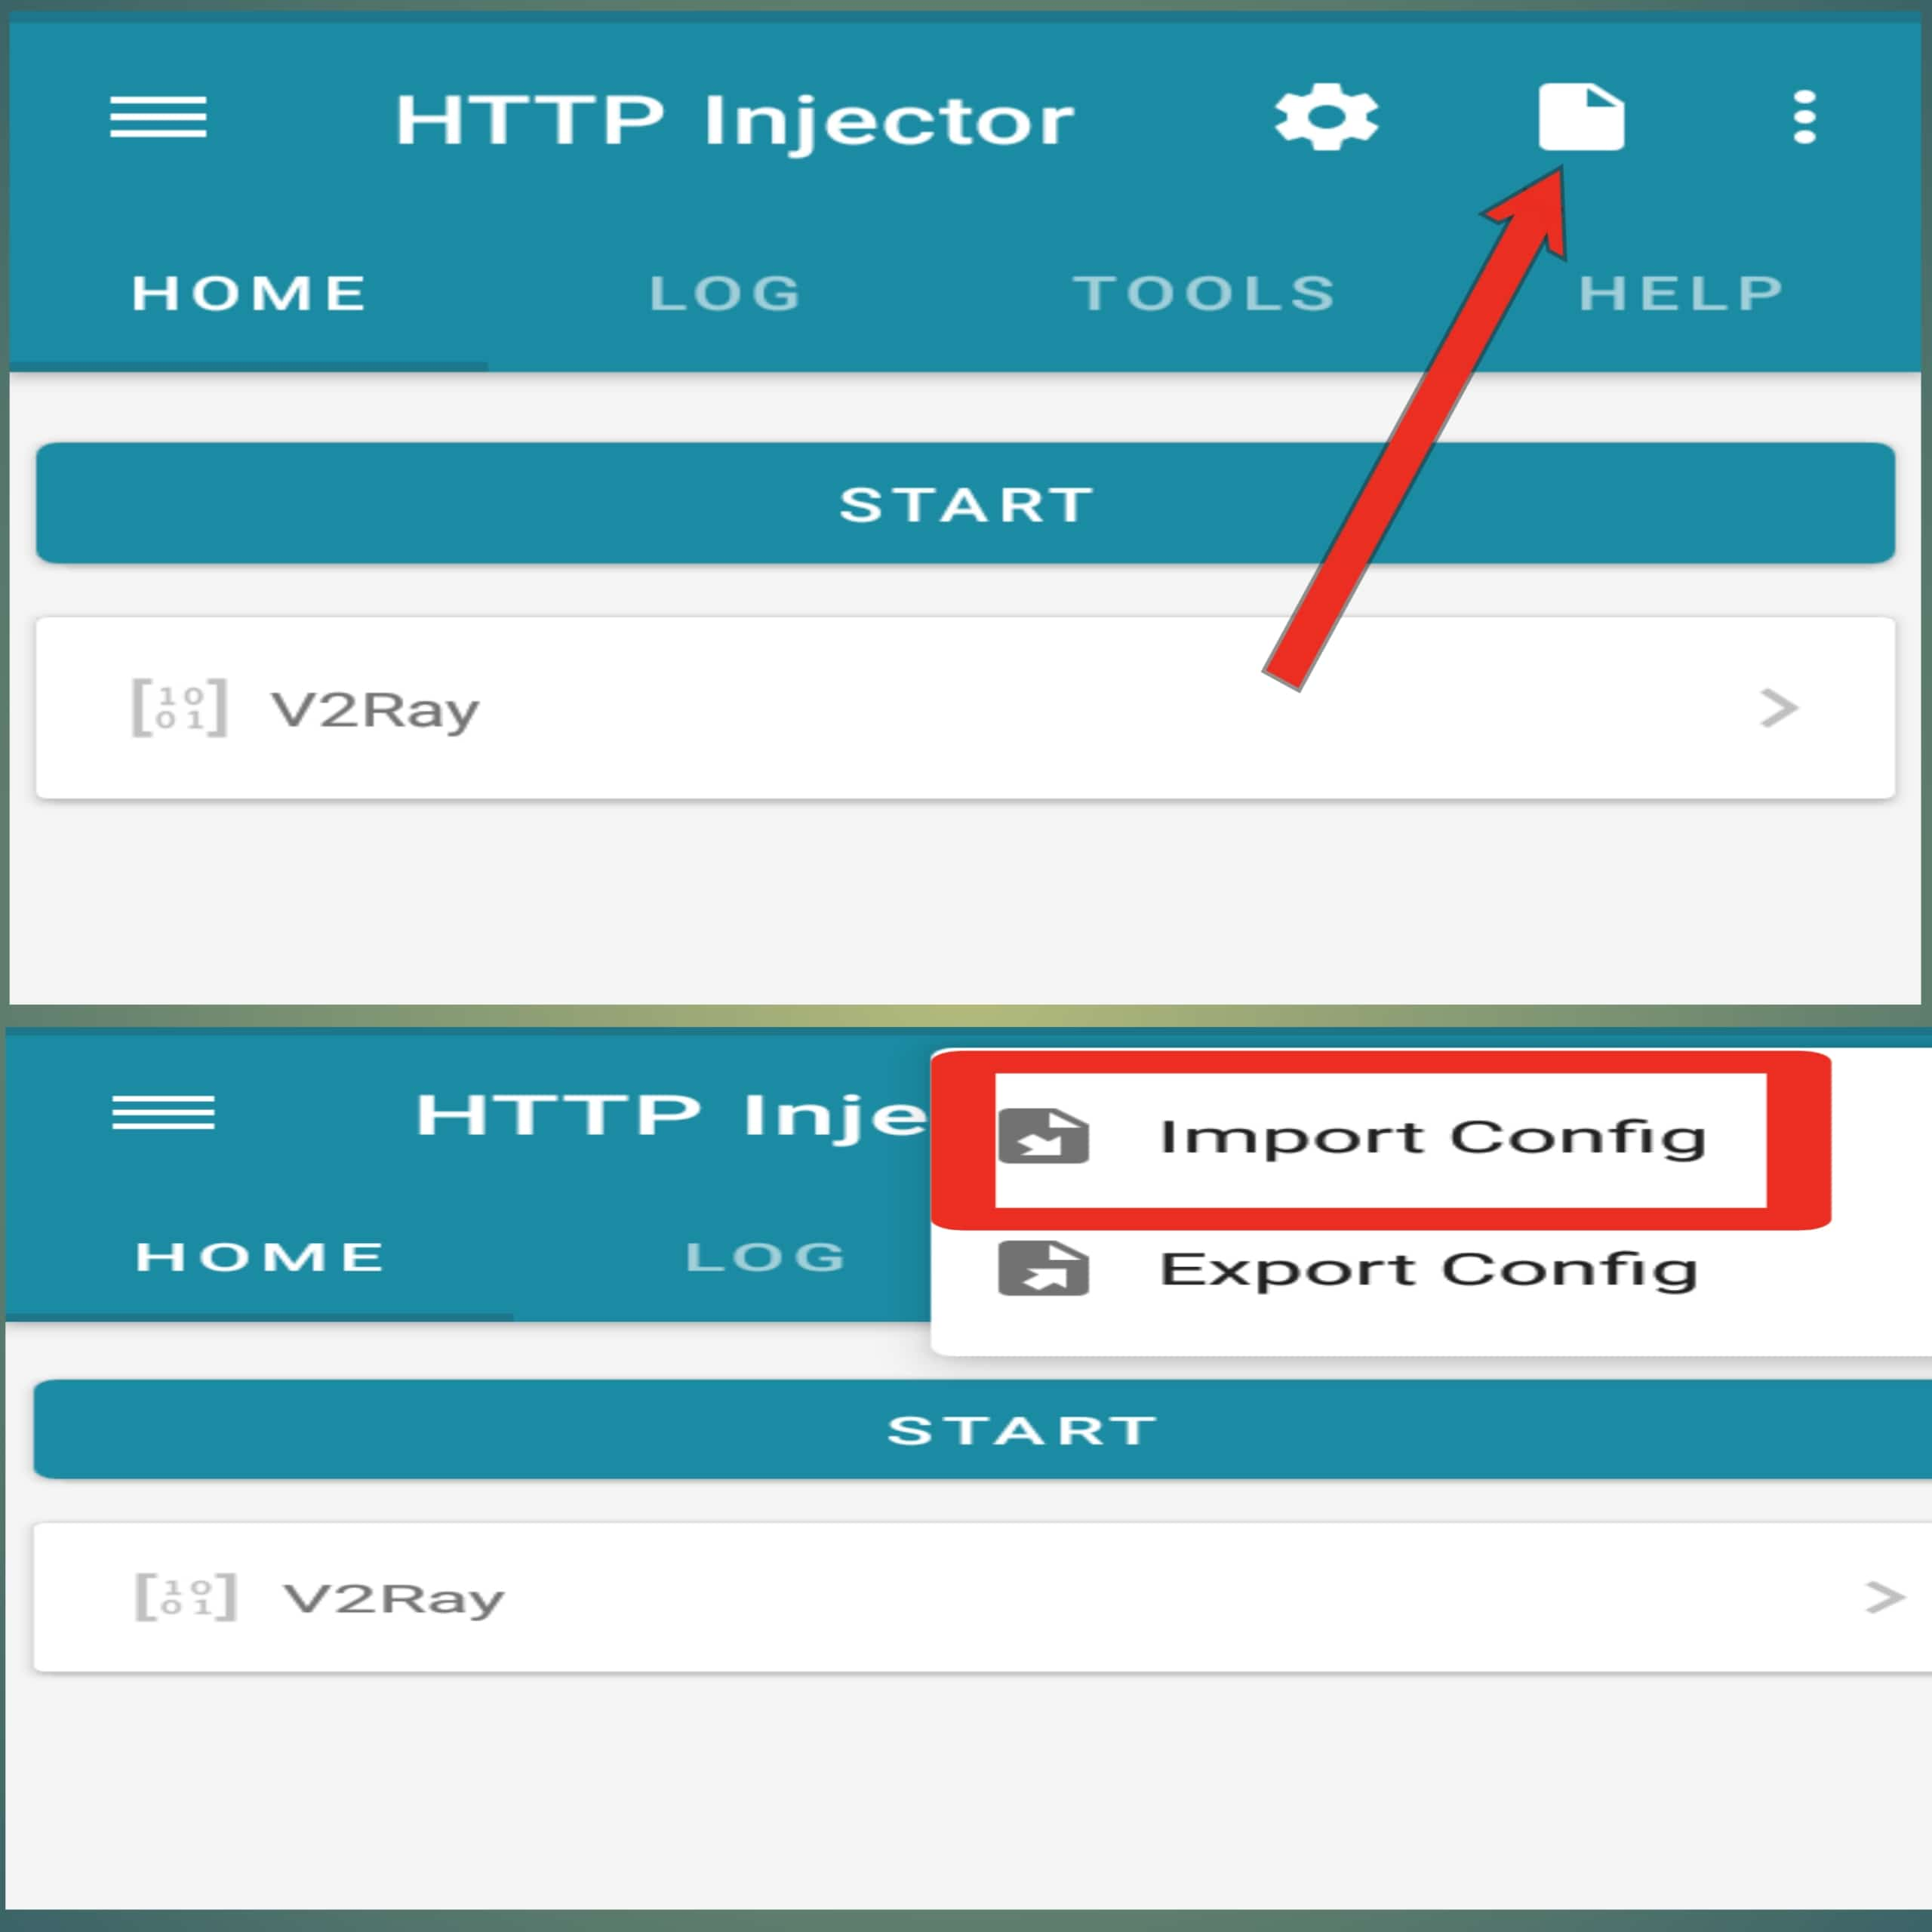 How to use http injector for free internet 2021